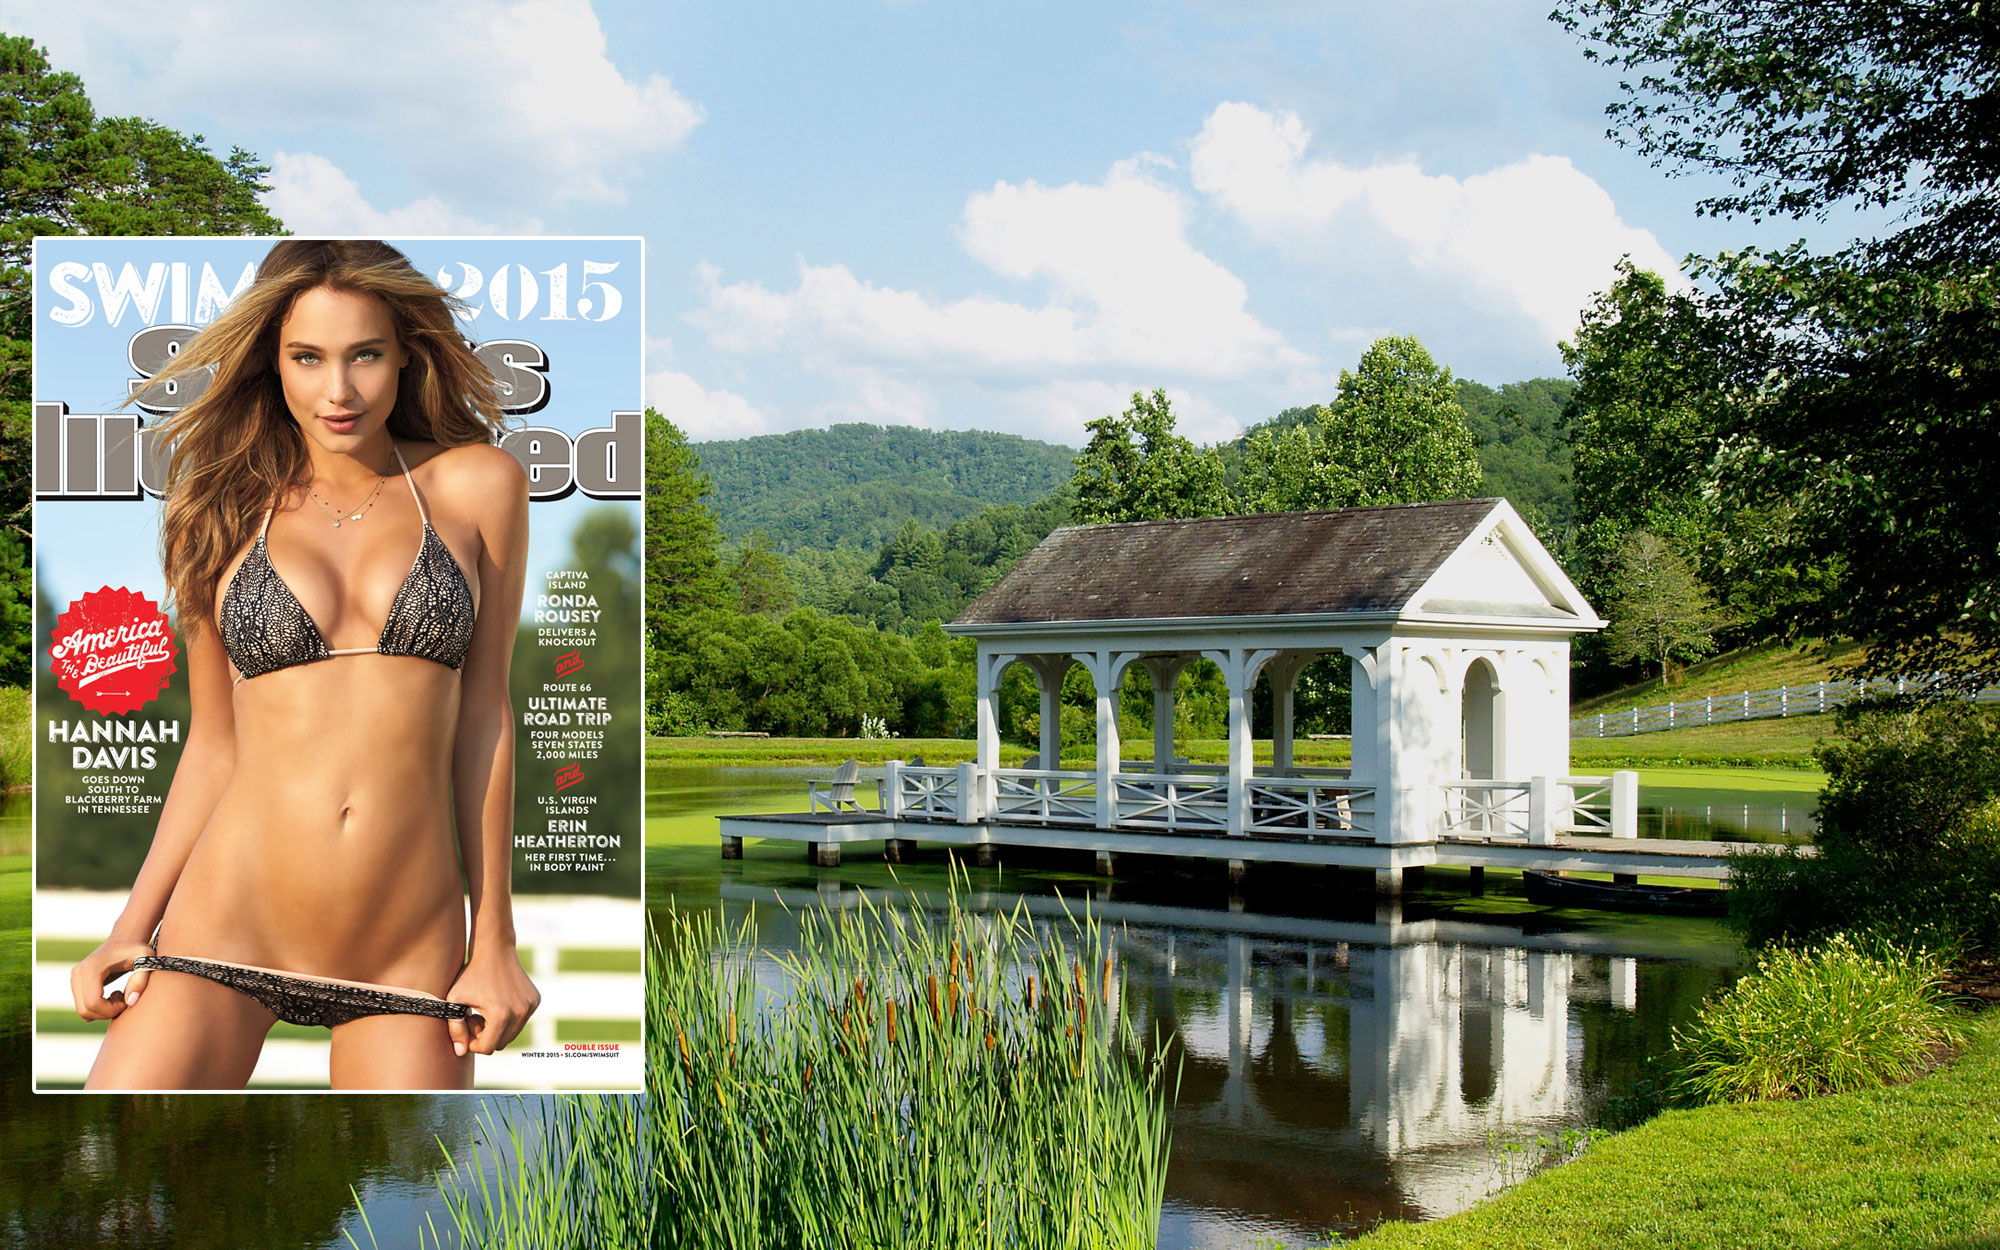 SI Swimsuit 2015: Blackberry Farm, Tennessee